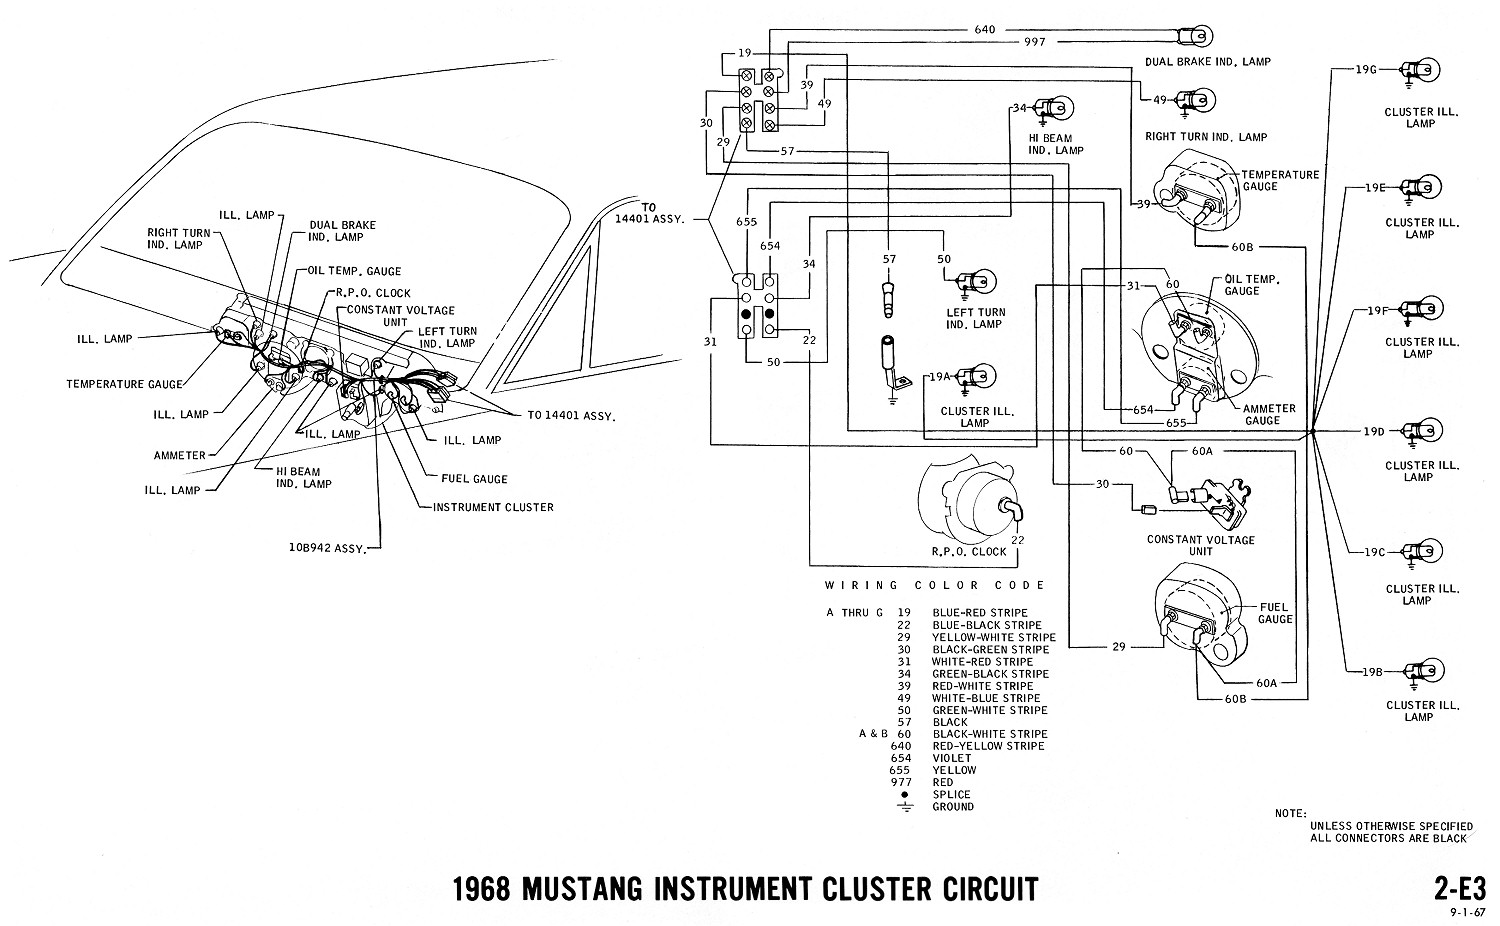 hight resolution of 1968 mustang wiring diagram for solenoid wiring diagram blogs 1968 mustang wiring diagram ford mustang wiring diagram 64 12